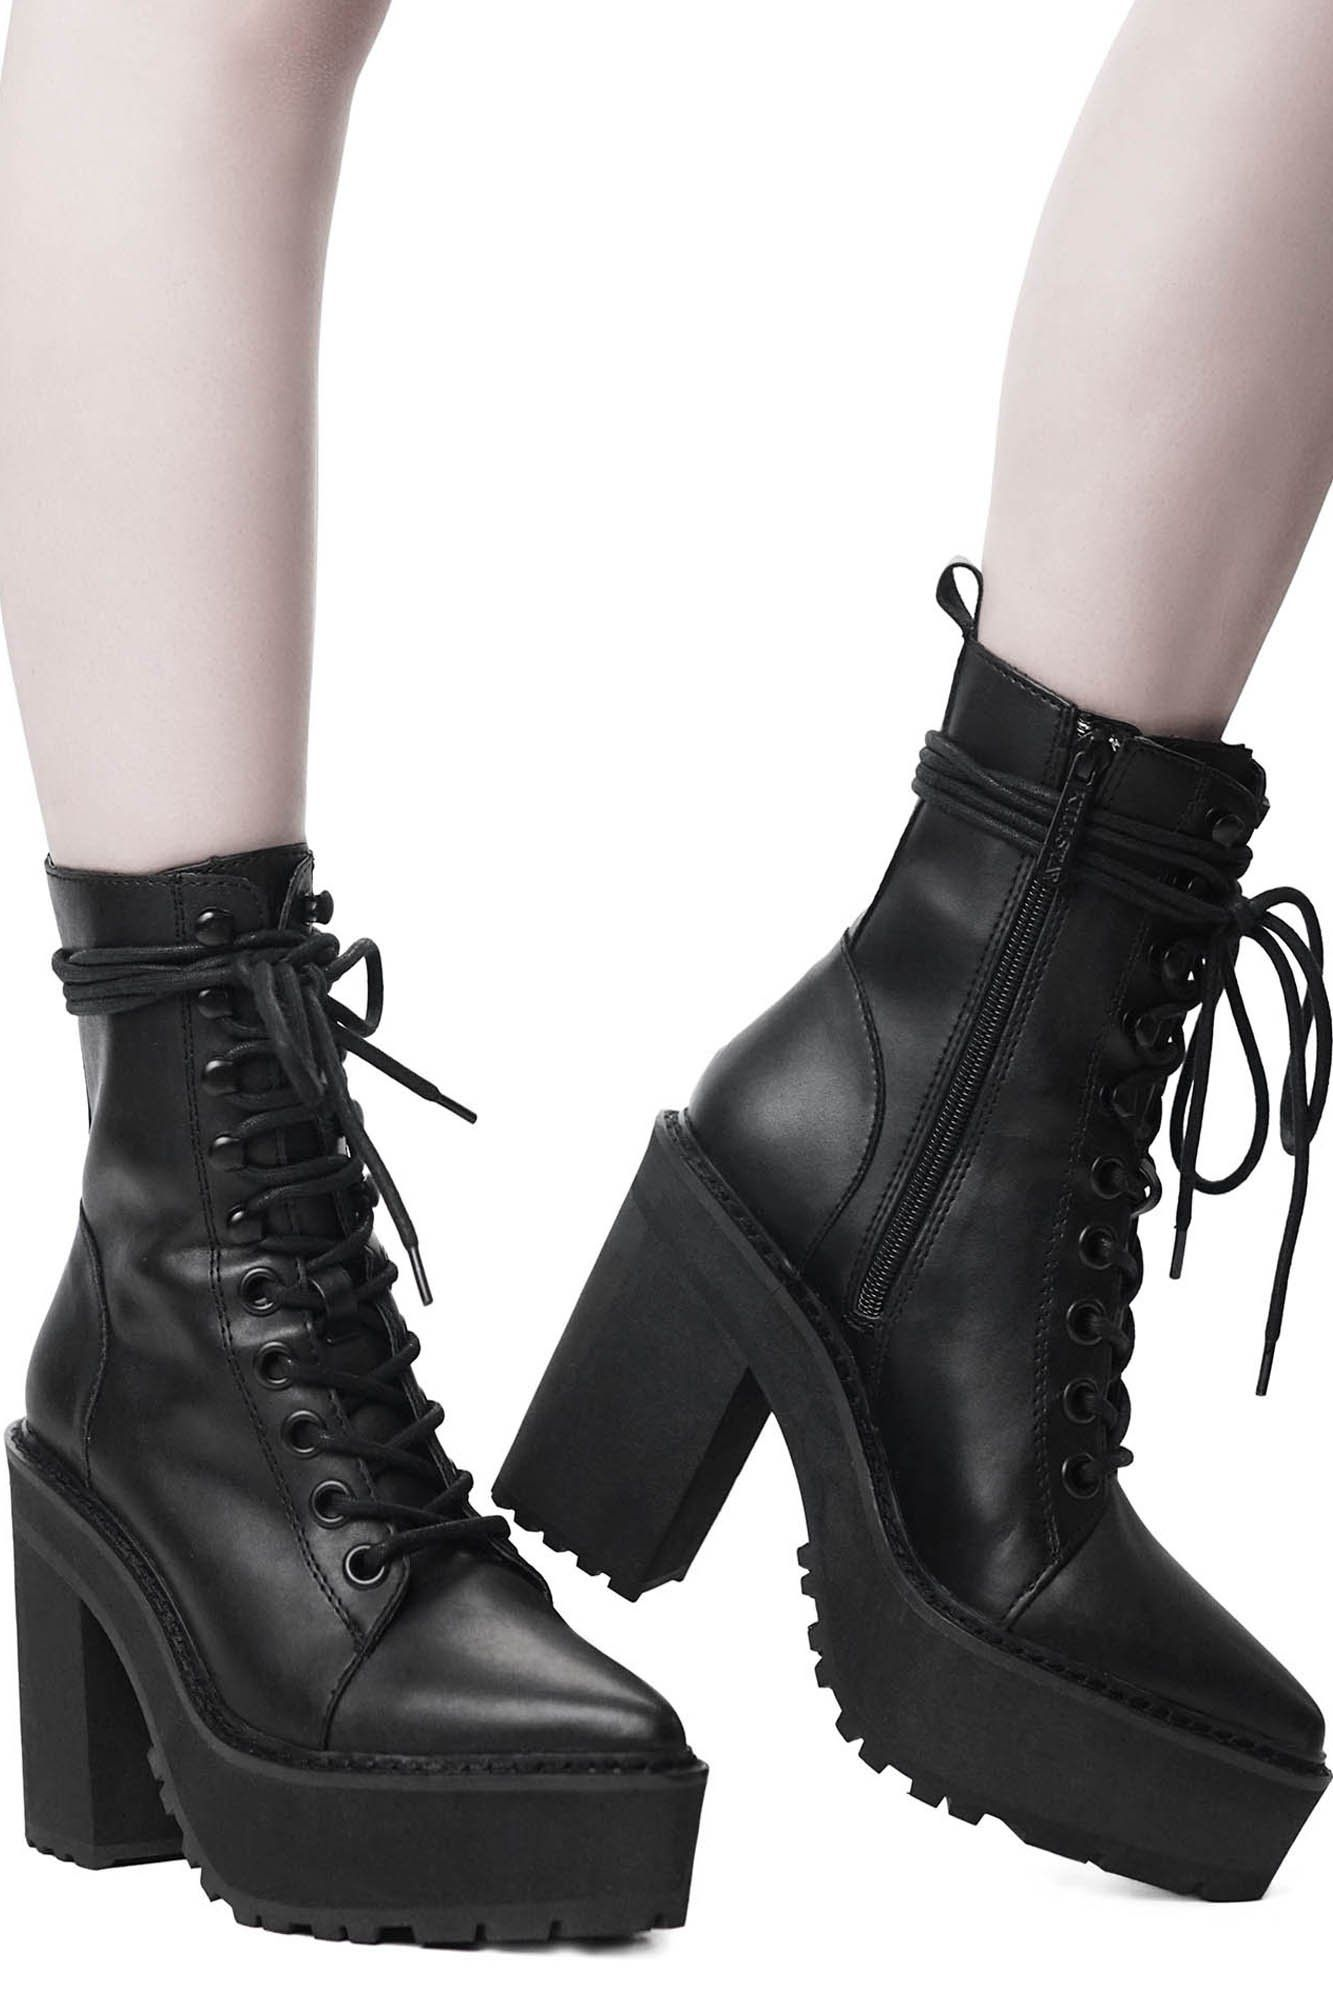 14eb725a1fc0 Salem City Boots. We are the children of the witches before us.